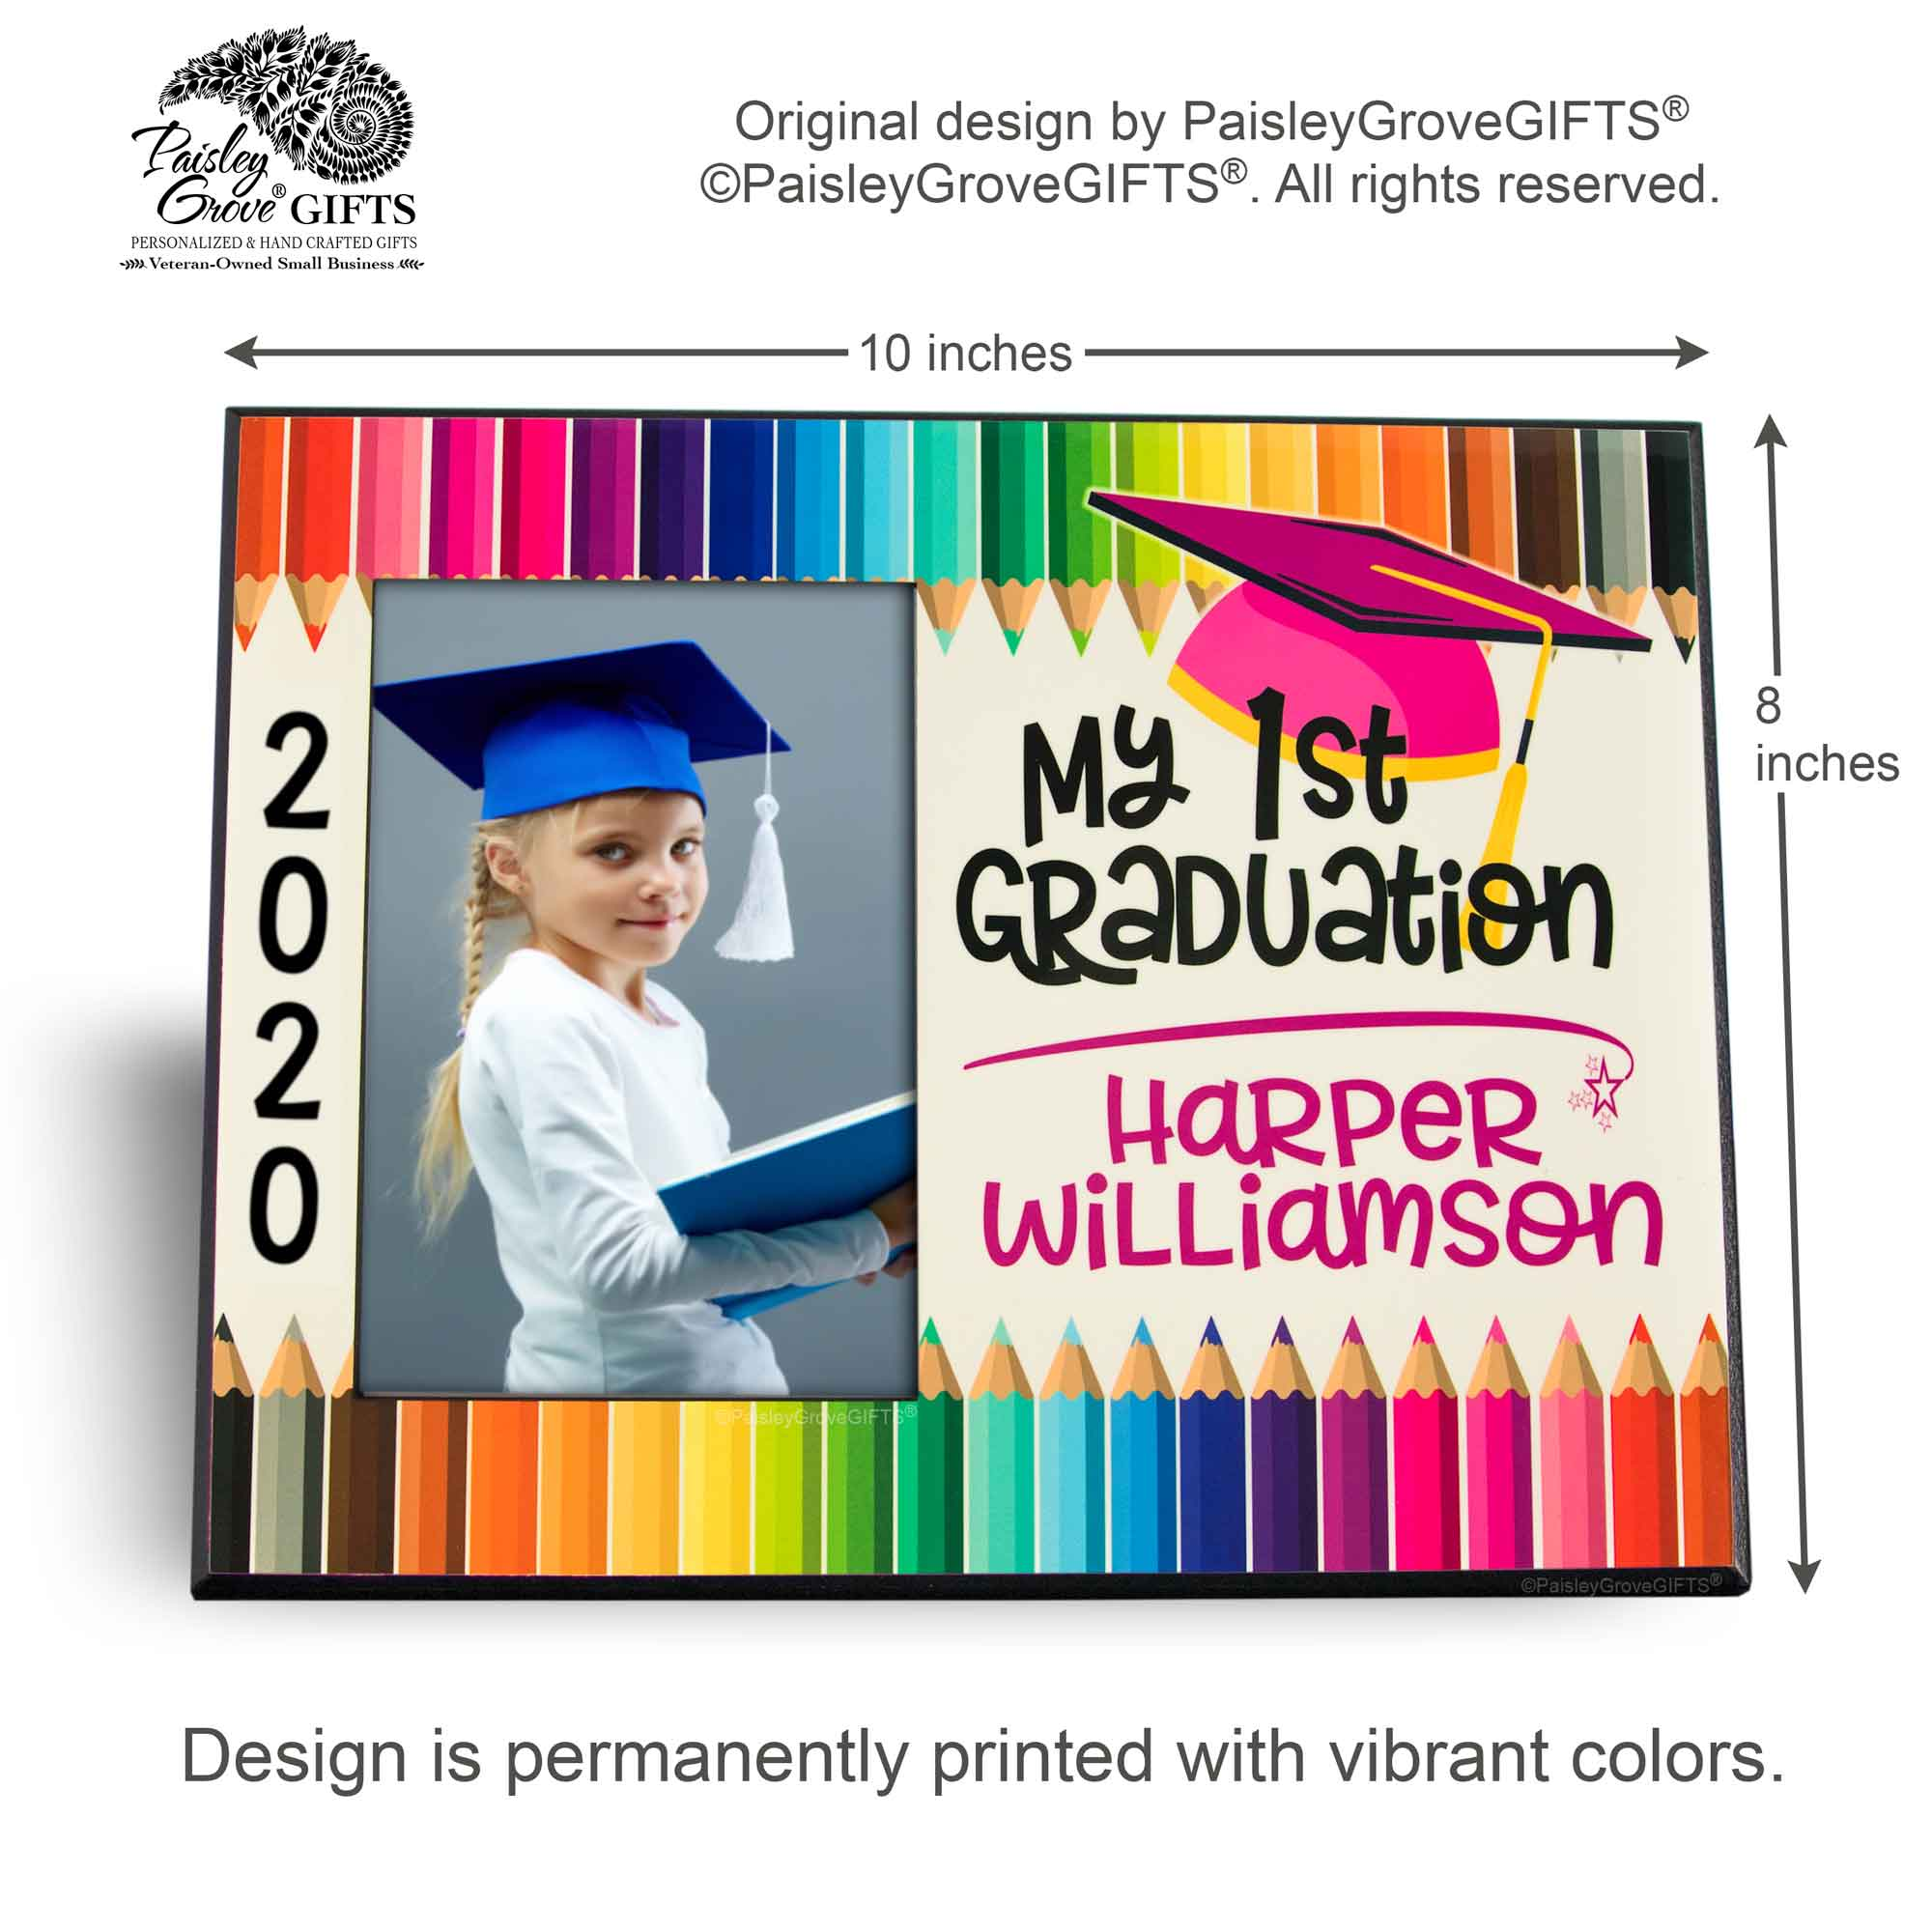 CopyrightPaisleyGroveGIFTS S228a Measurements for Customized Graduation Keepsake Graduate Picture Frame